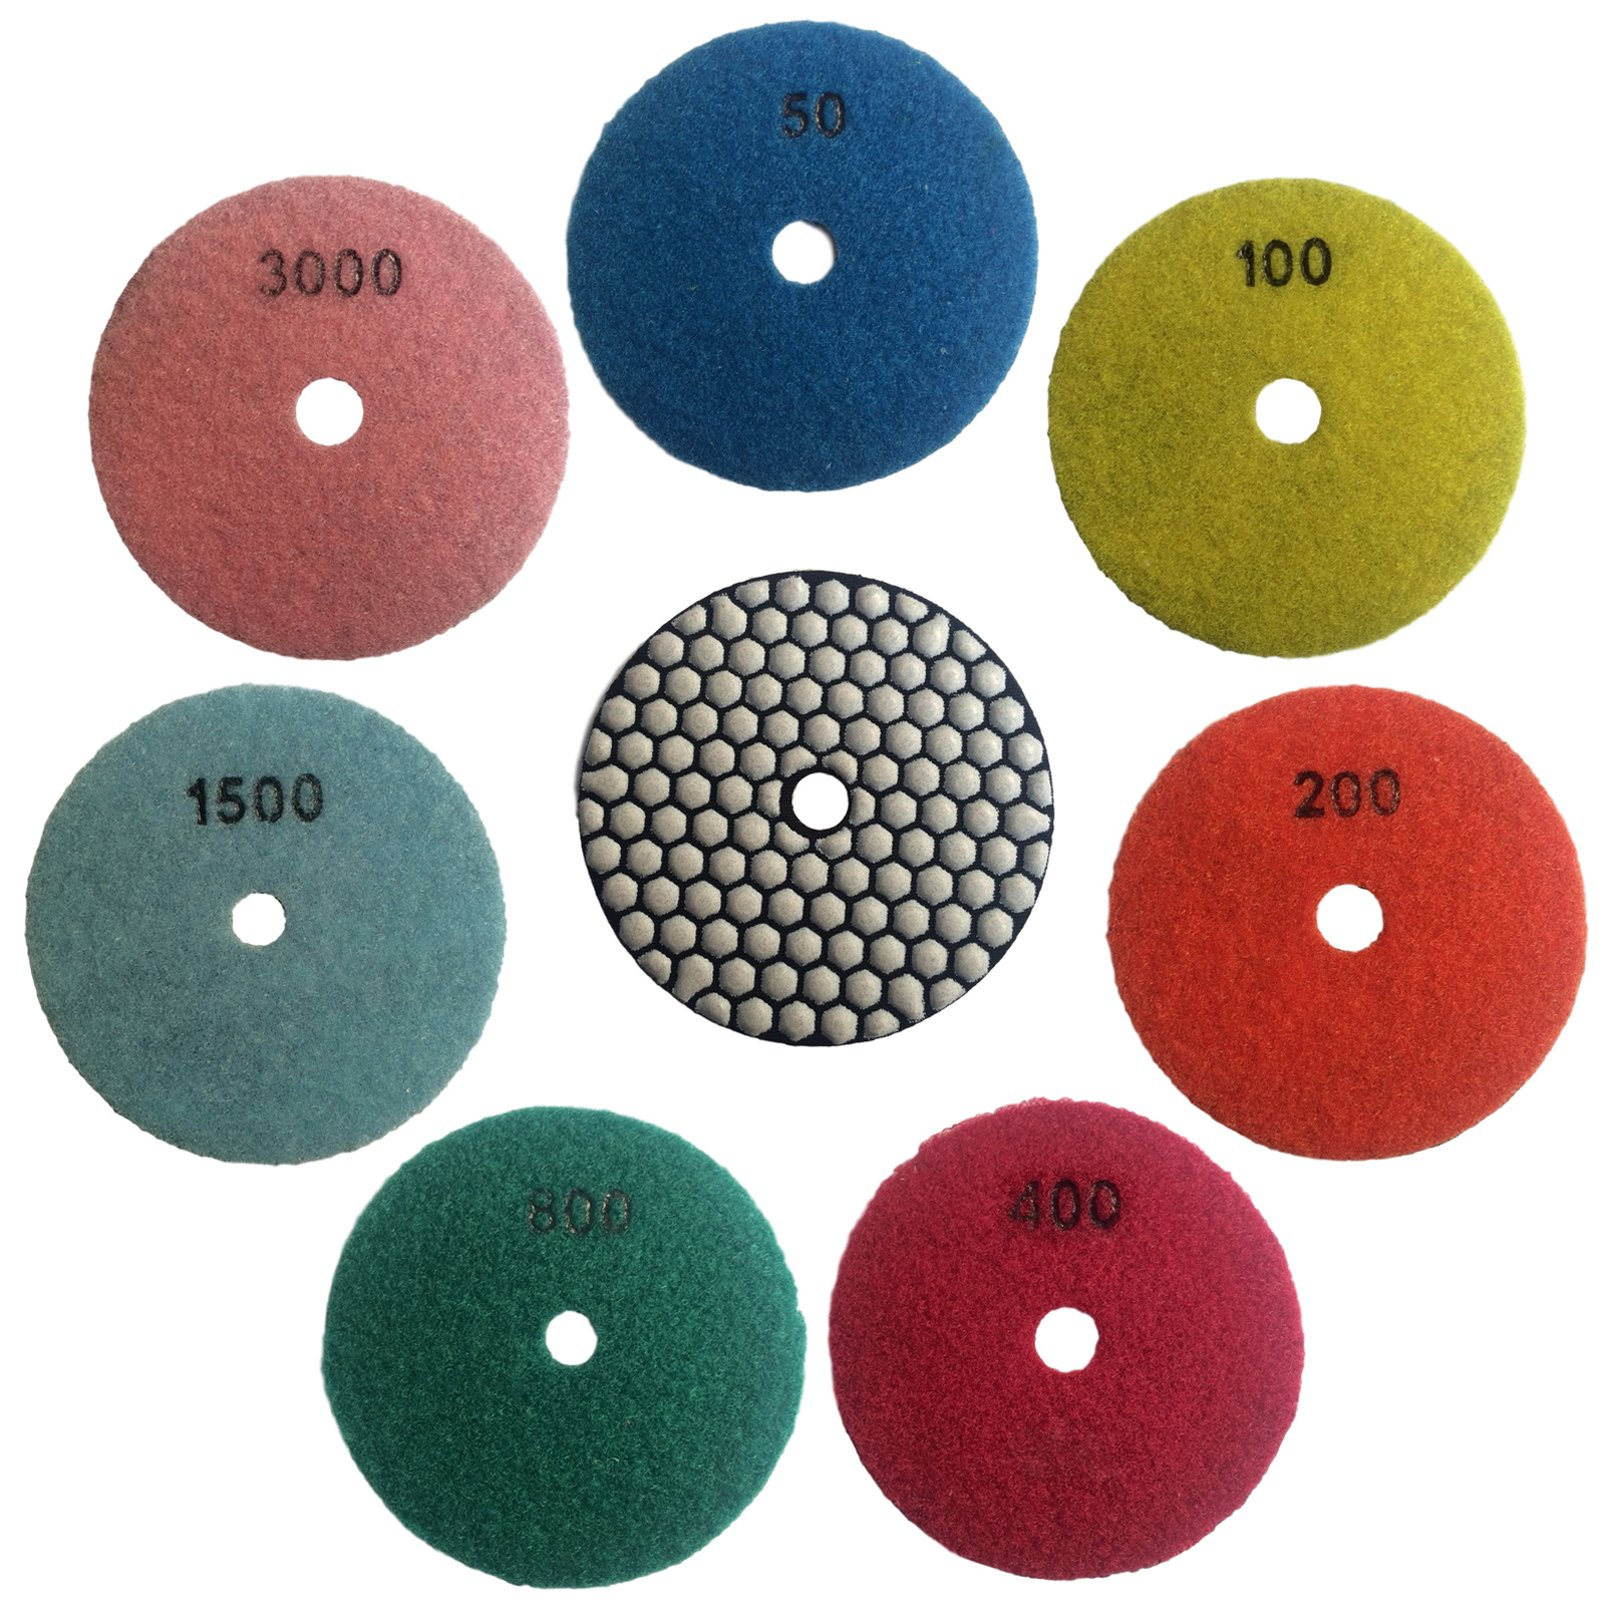 Konfor 3 Inch 7 Pcs Dry Diamond Polishing Pads for Grinding Granite Marble Stone